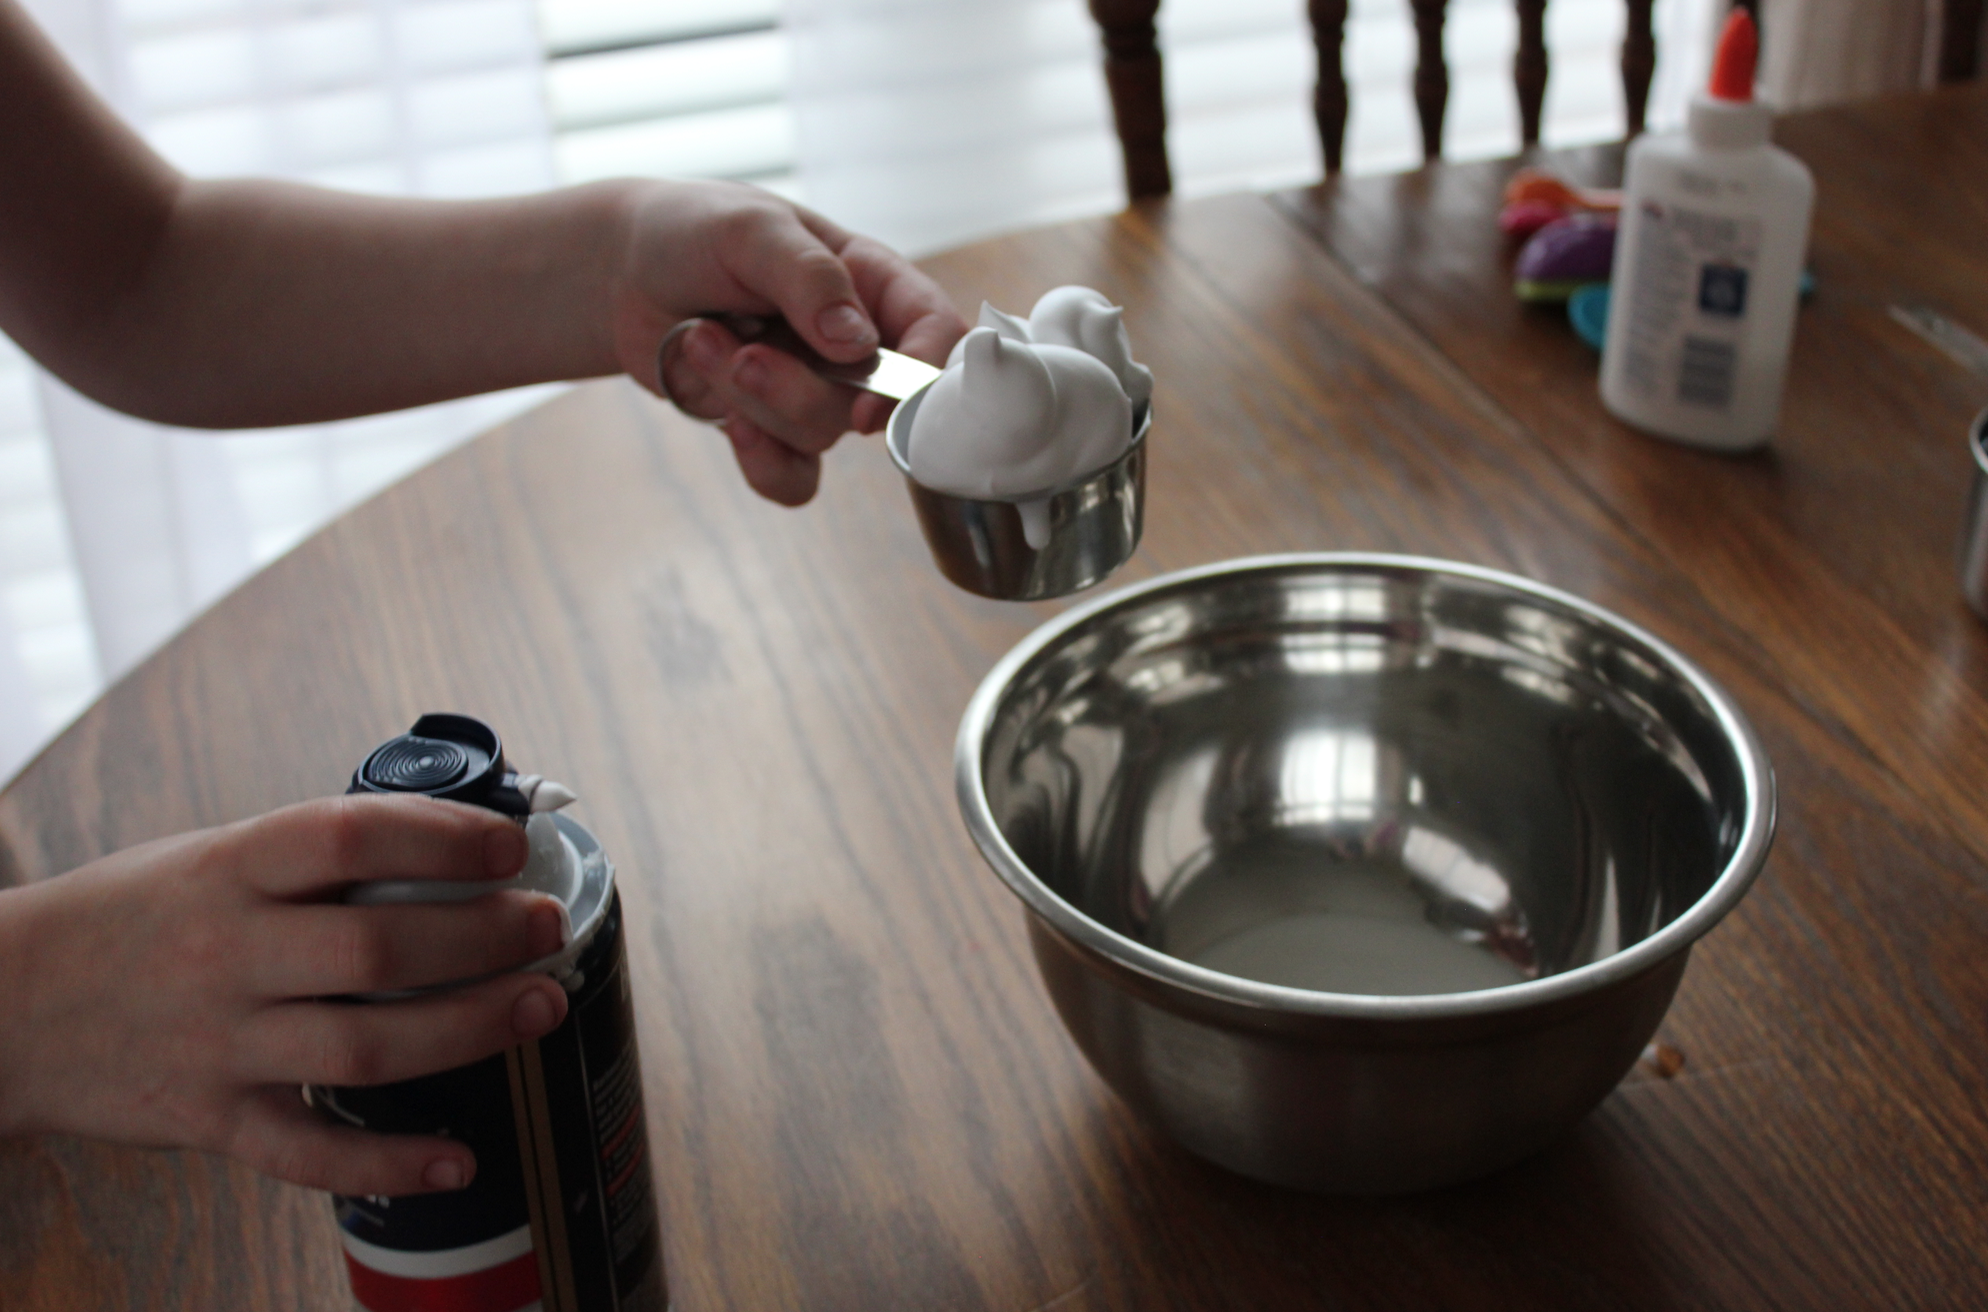 How to make homemade slime money saving mom money saving mom now add one fourth a cup of glue shaving cream foaming hand soap and a few squirts of liquid hand soap to the bowl mix well ccuart Choice Image